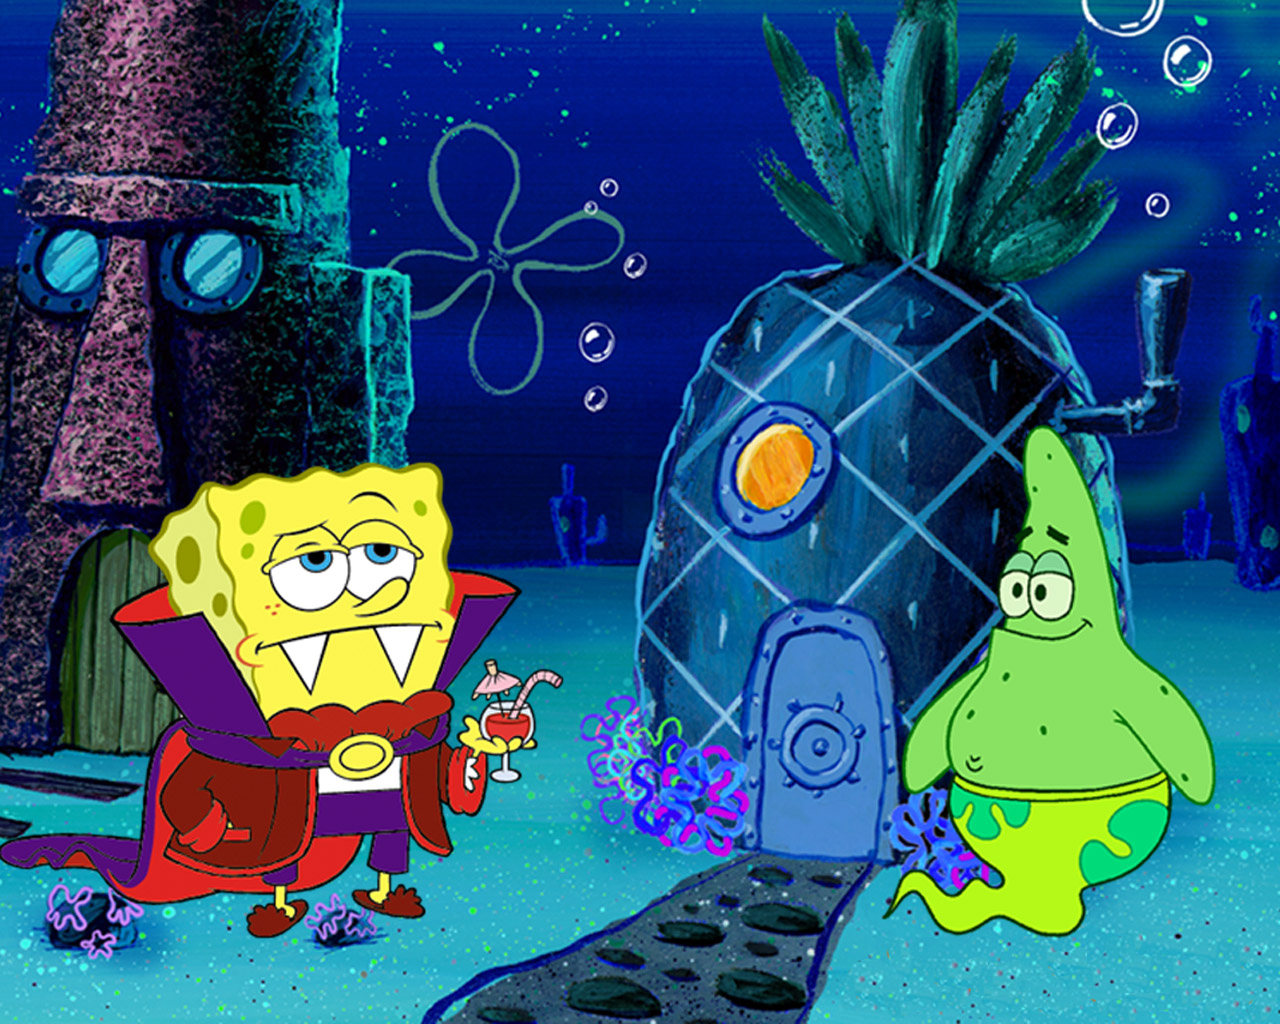 Spongebob Halloween Costumes Wallpaper Desktop Background Free Download